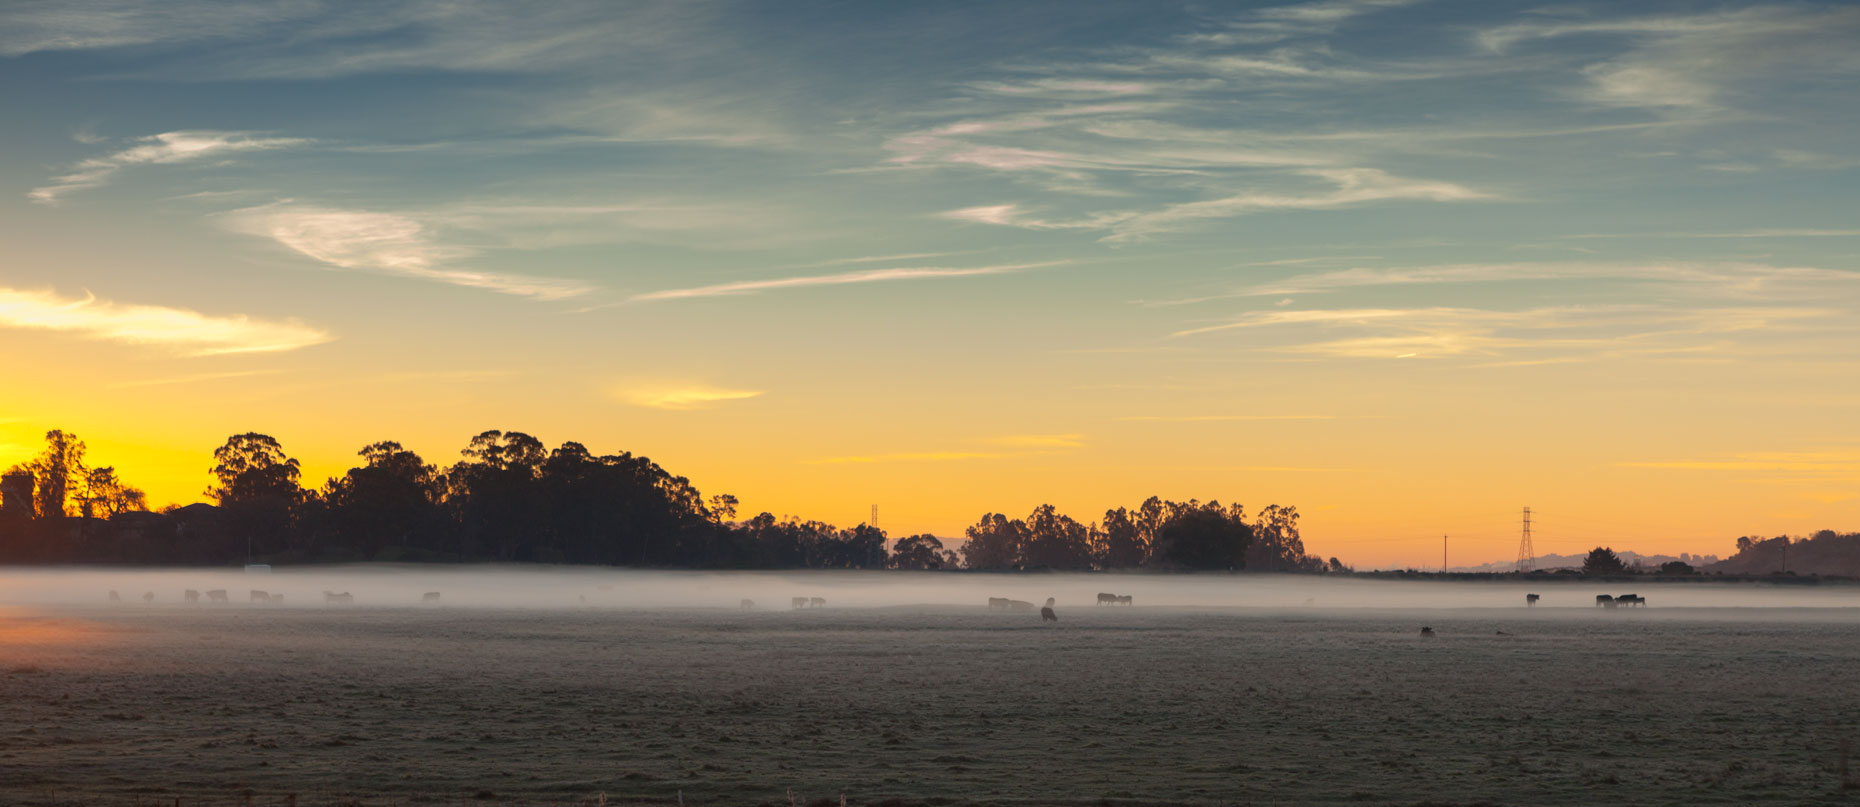 Cattle in the Fog at Sunrise